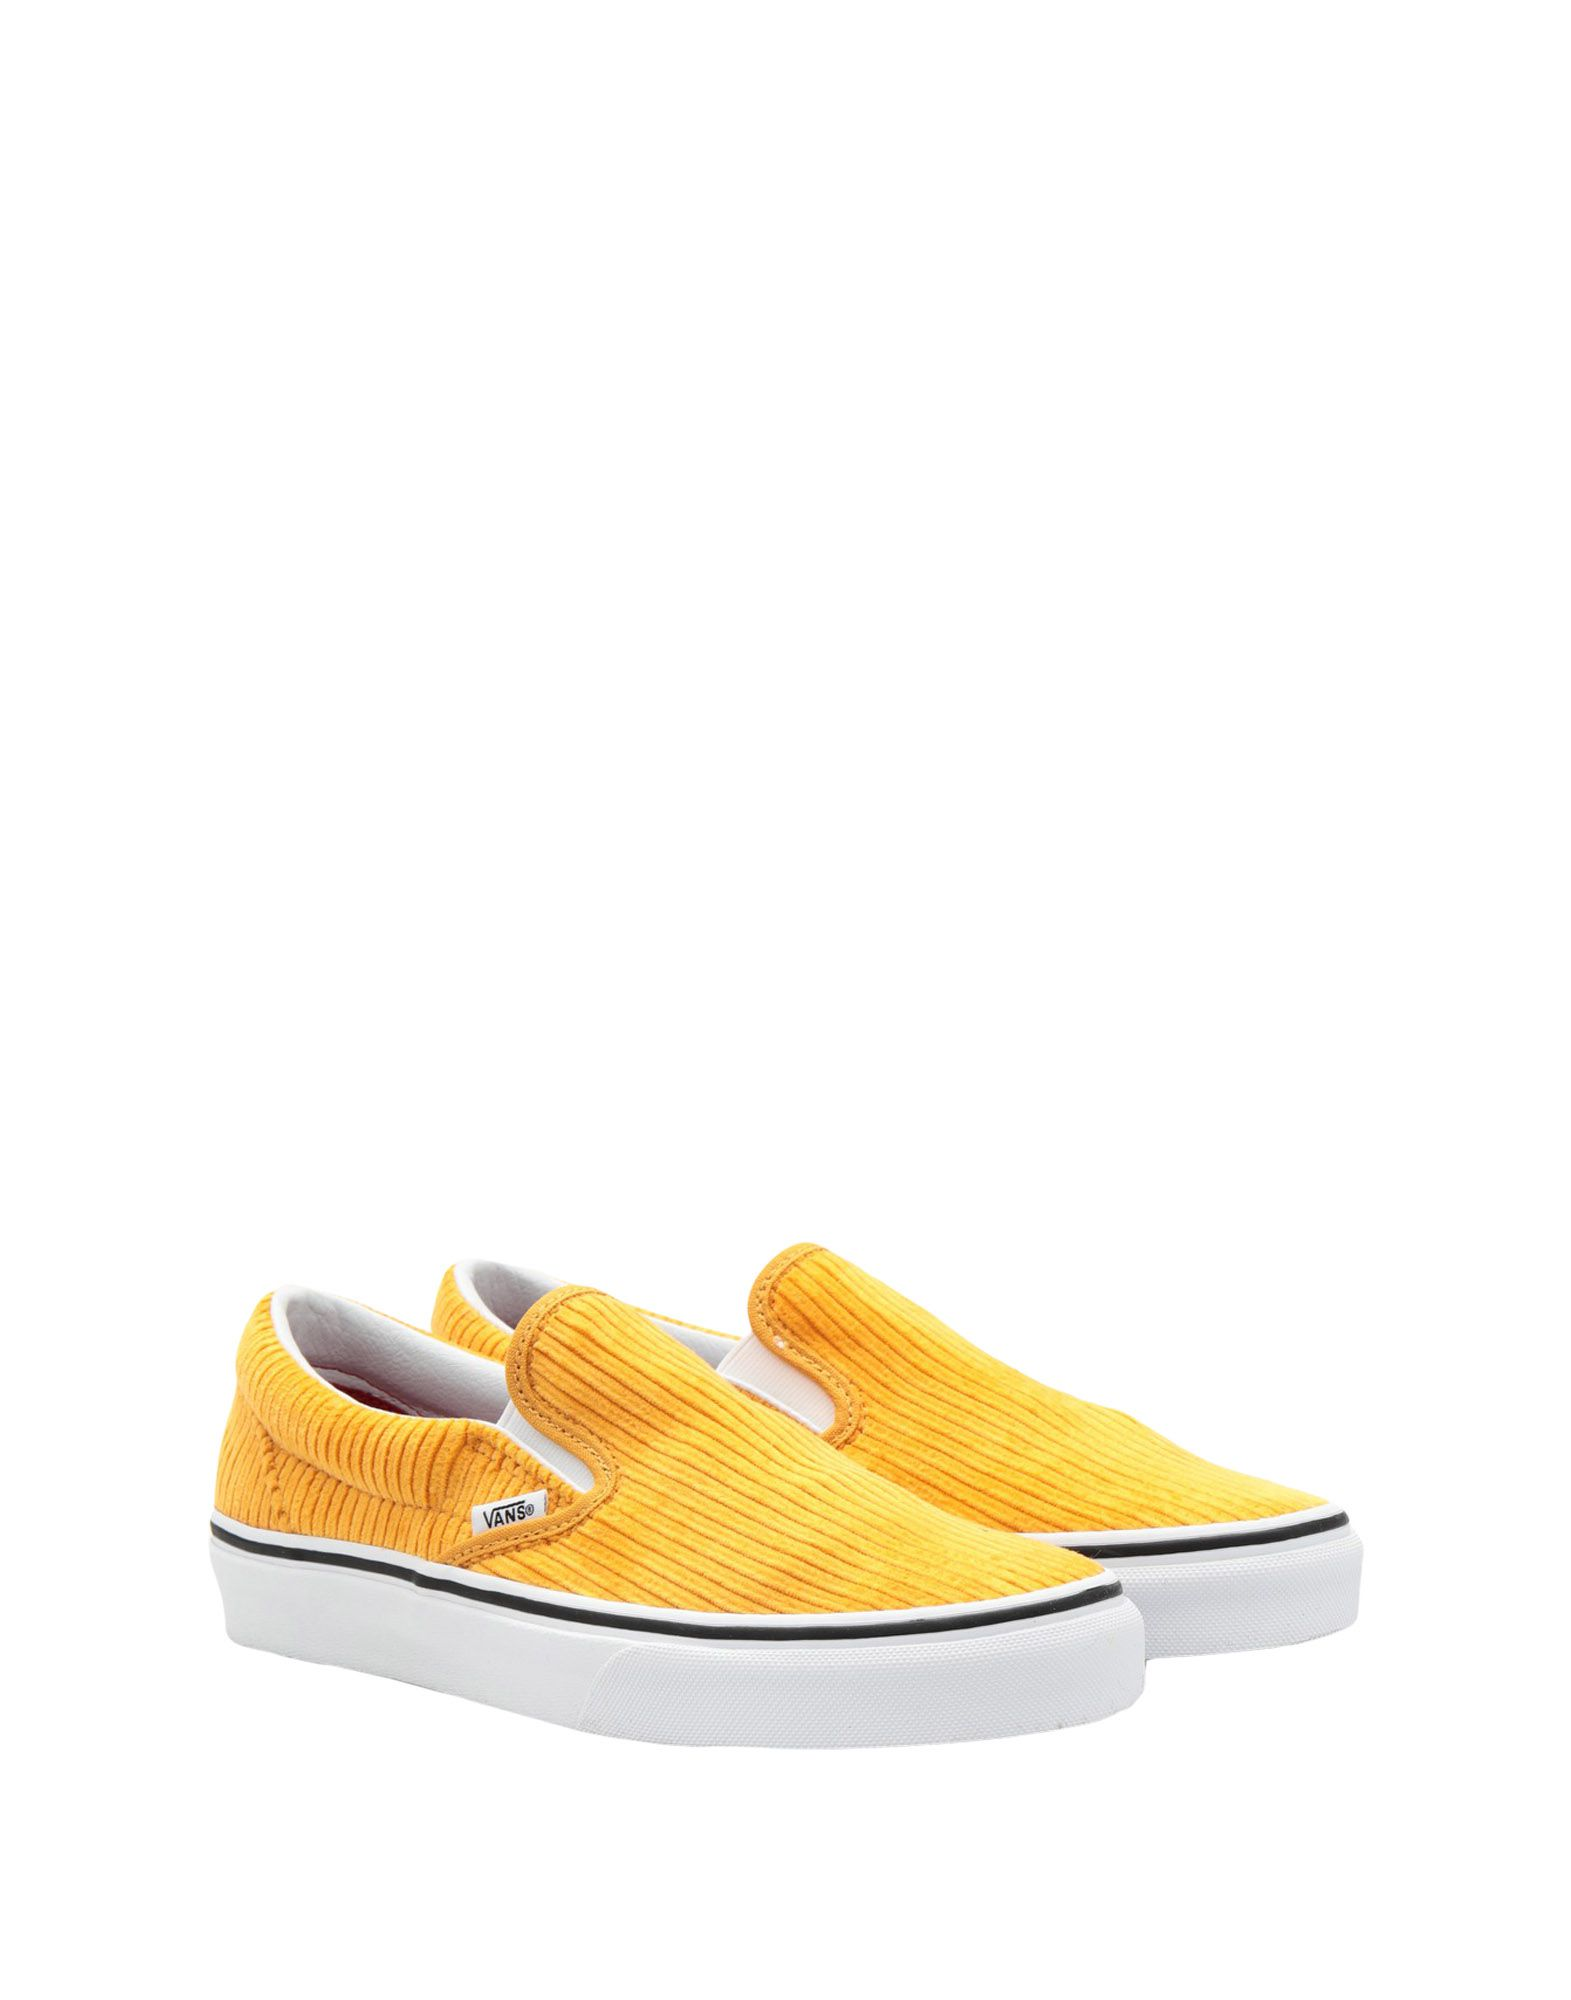 Vans Ua Classic Slip-On (Design Assembly) Assembly) Assembly) - Sneakers - Women Vans Sneakers online on  United Kingdom - 11571721BJ a01196